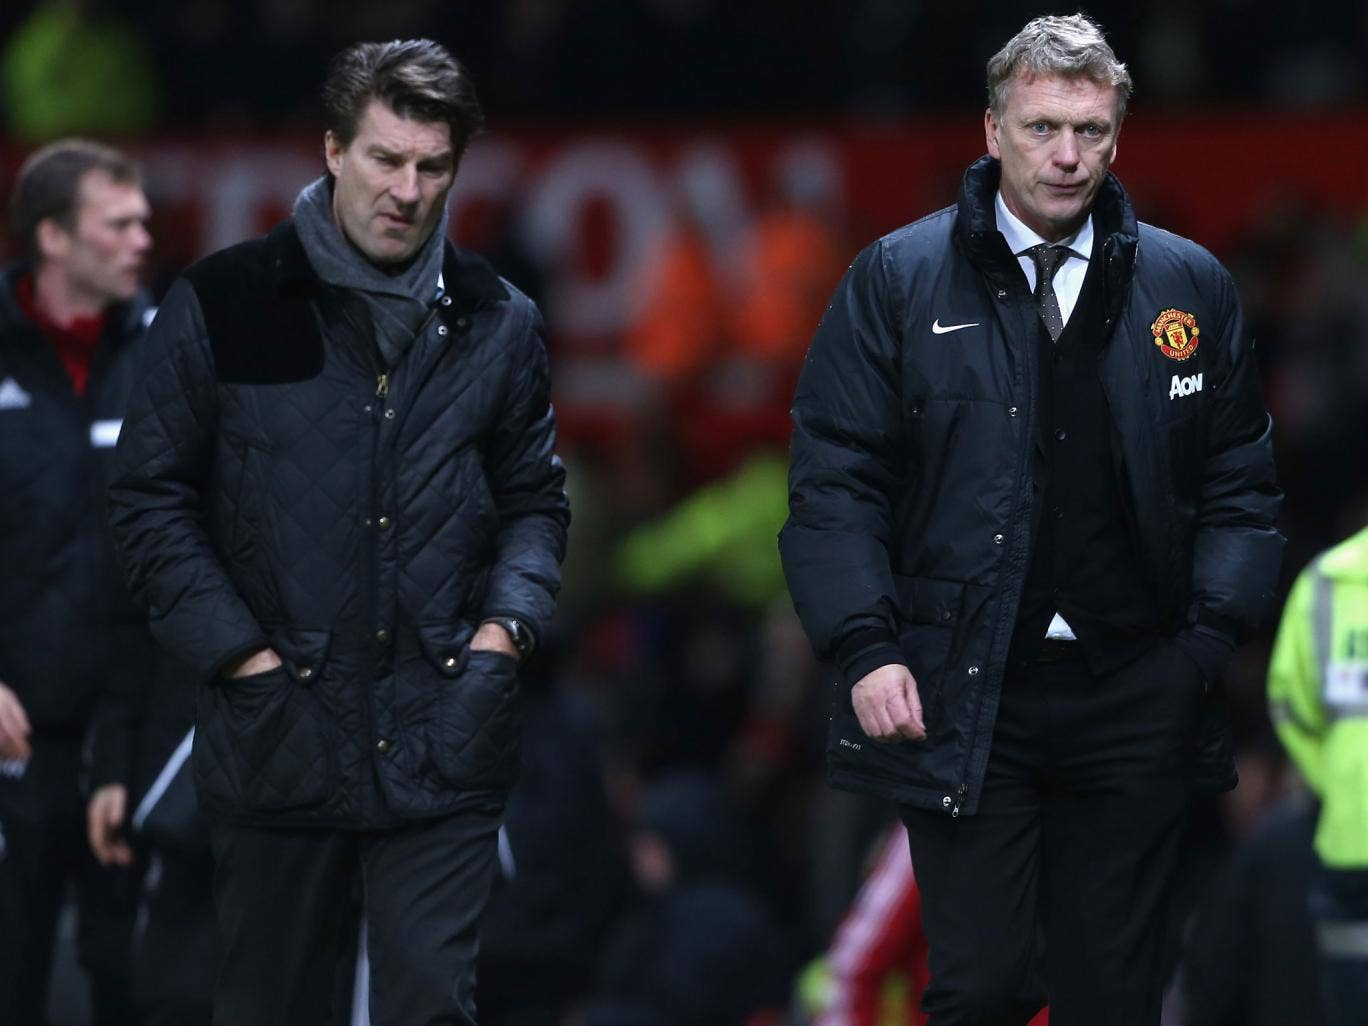 Michael Laudrup and David Moyes had mixed emotions after Swansea knocked Manchester United out of the FA Cup via a 2-1 victory